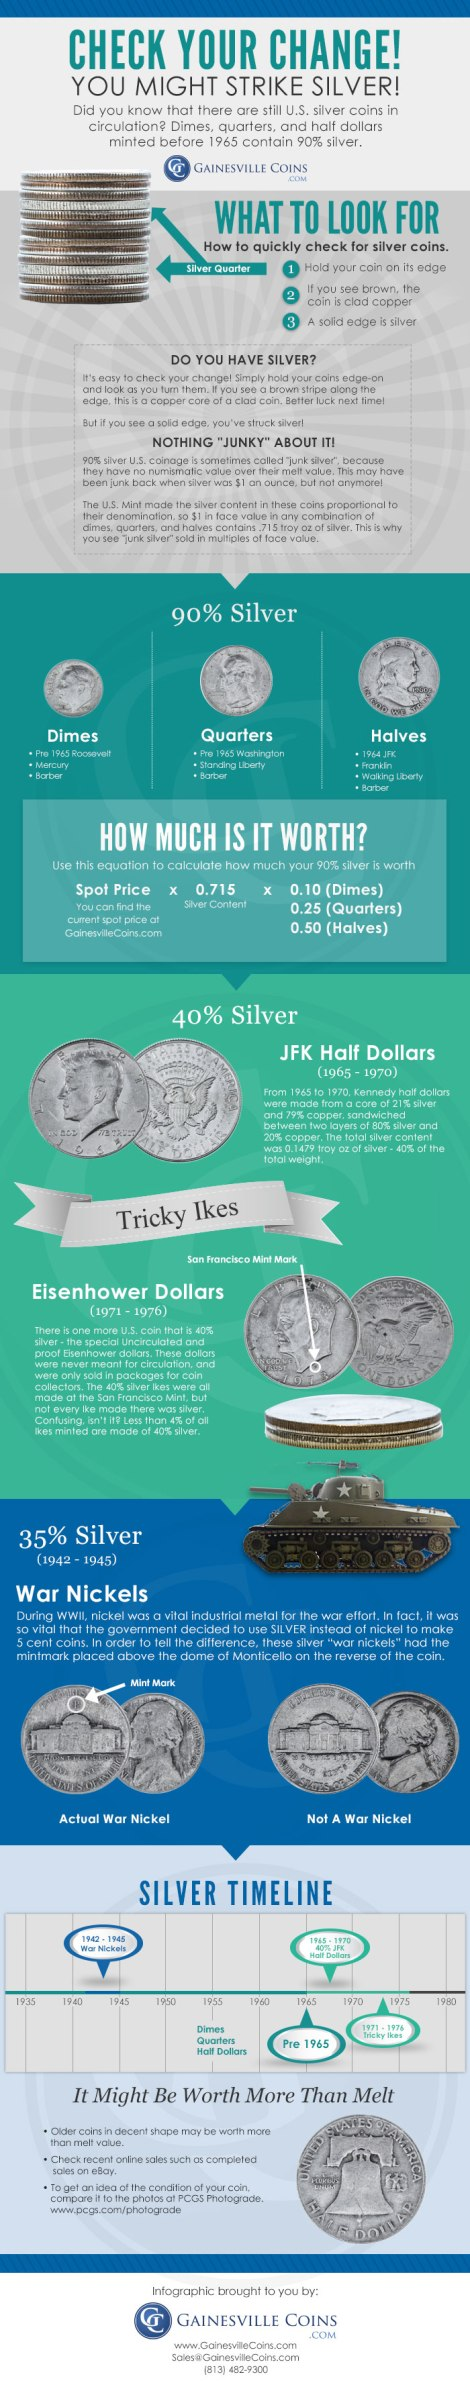 Silver Bullion or Junk Silver for Long-term Bartering?